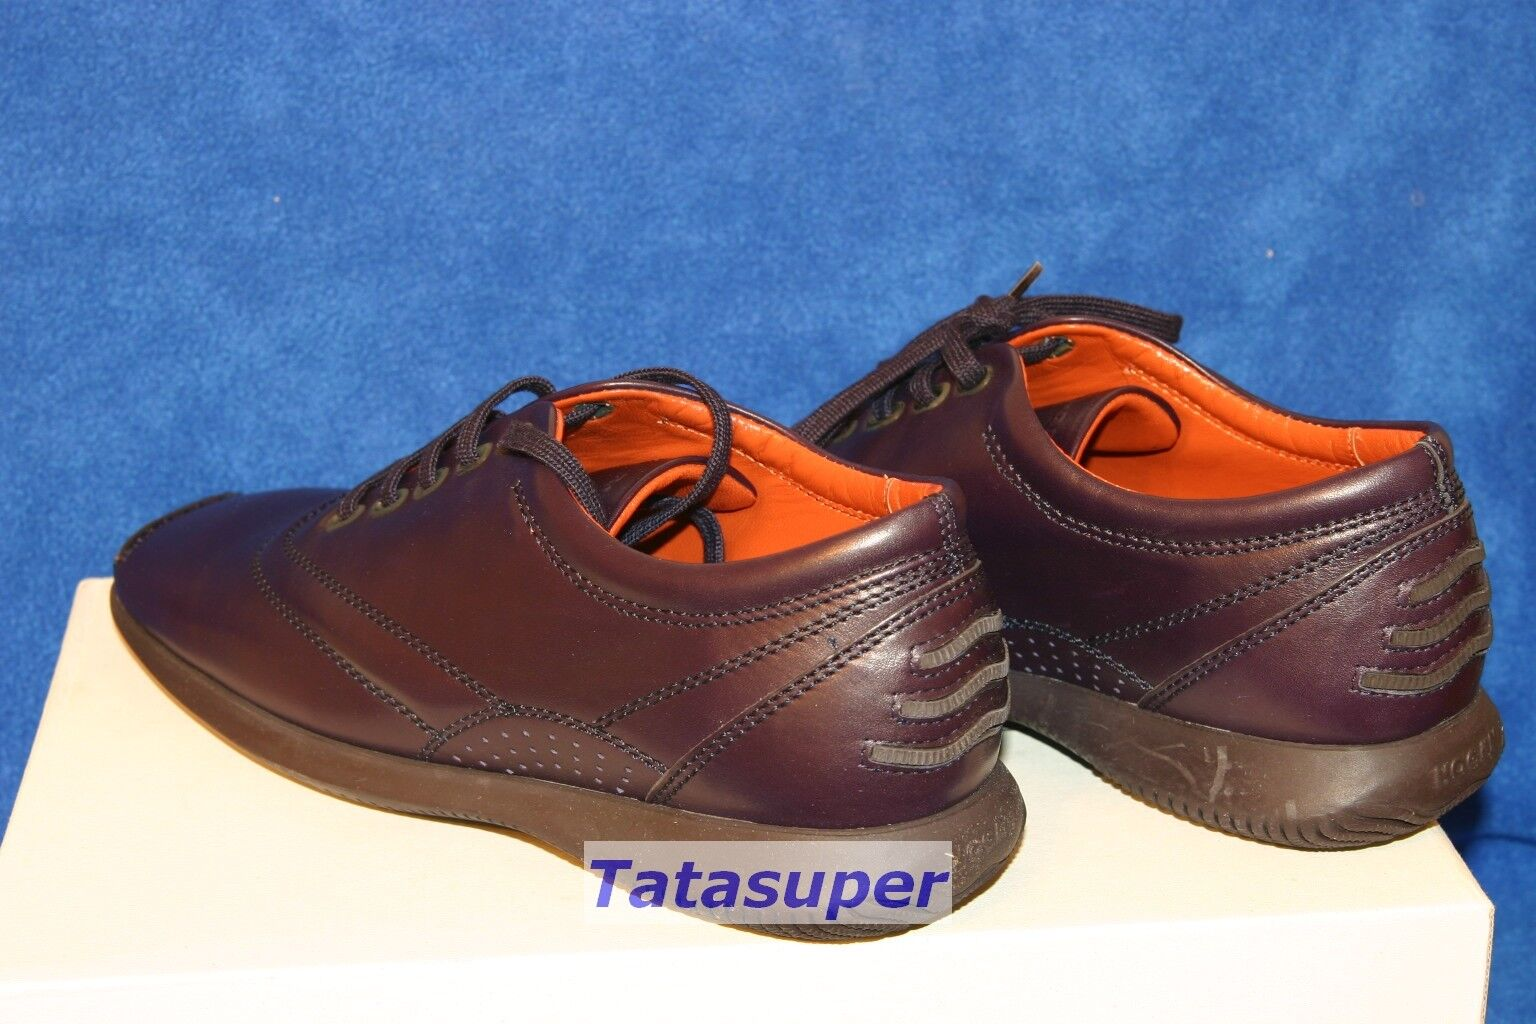 100% Authentic Authentic Authentic Hogan scarpe da ginnastica scarpe Dimensione 38 - viola 2f4cd1